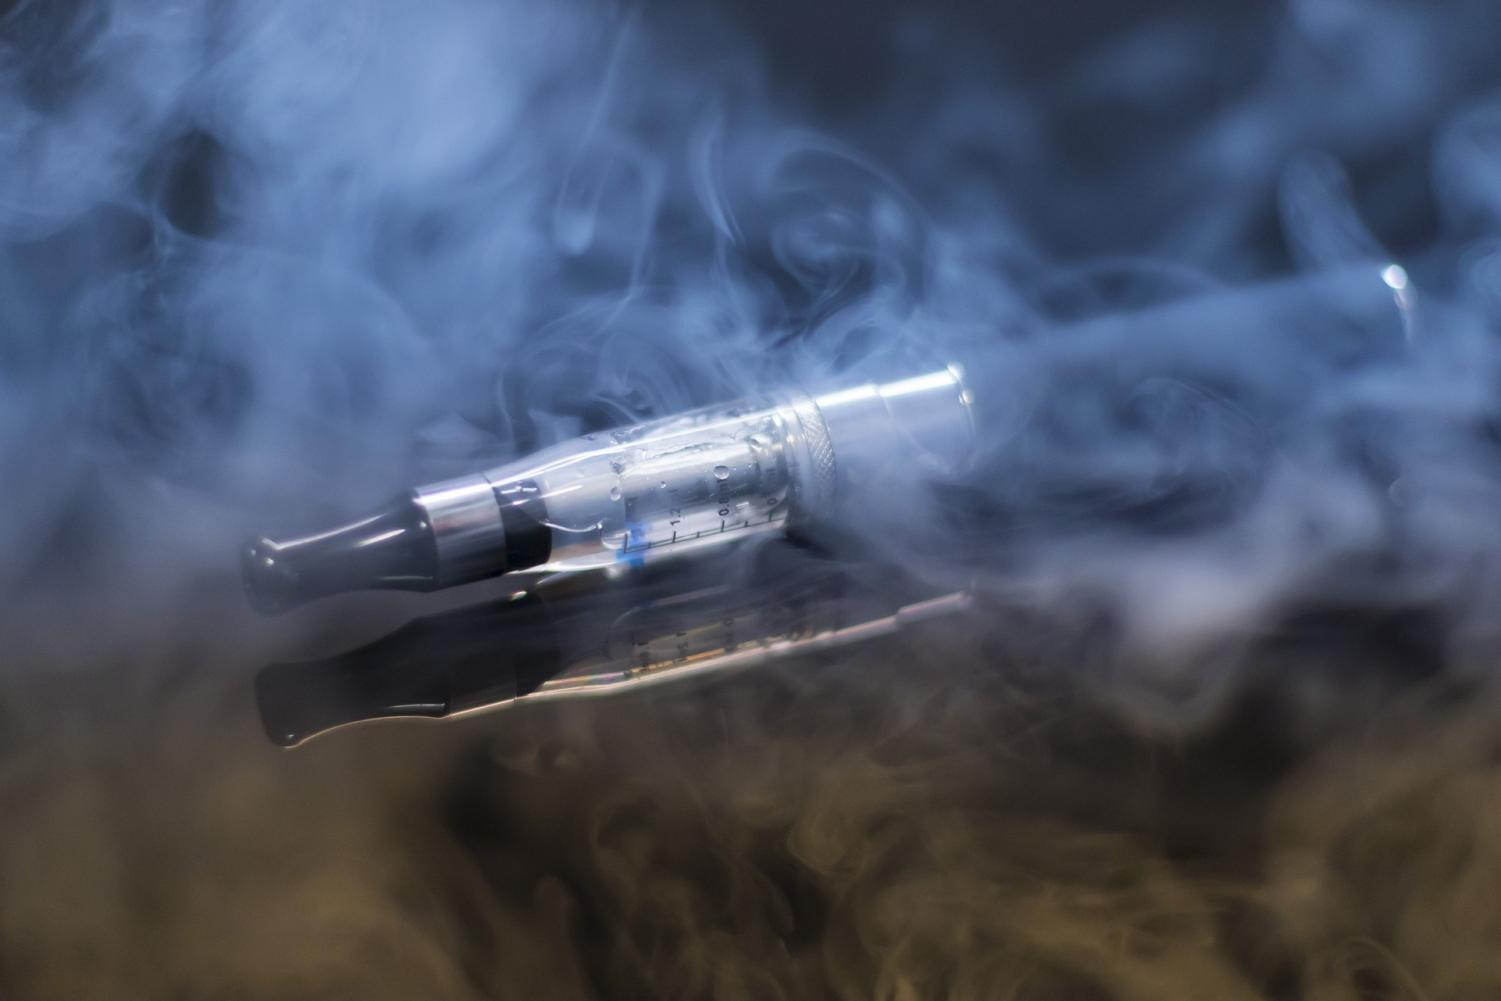 As of August 2018, the FDA requires that all tobacco products that meet their requirements, which includes cigarettes, vaporizers and any electronic nicotine delivering systems, to display a nicotine warning The agency also sent e-cigarette producers a warning that they must work to lower underage usage, or their products could be banned from being sold.